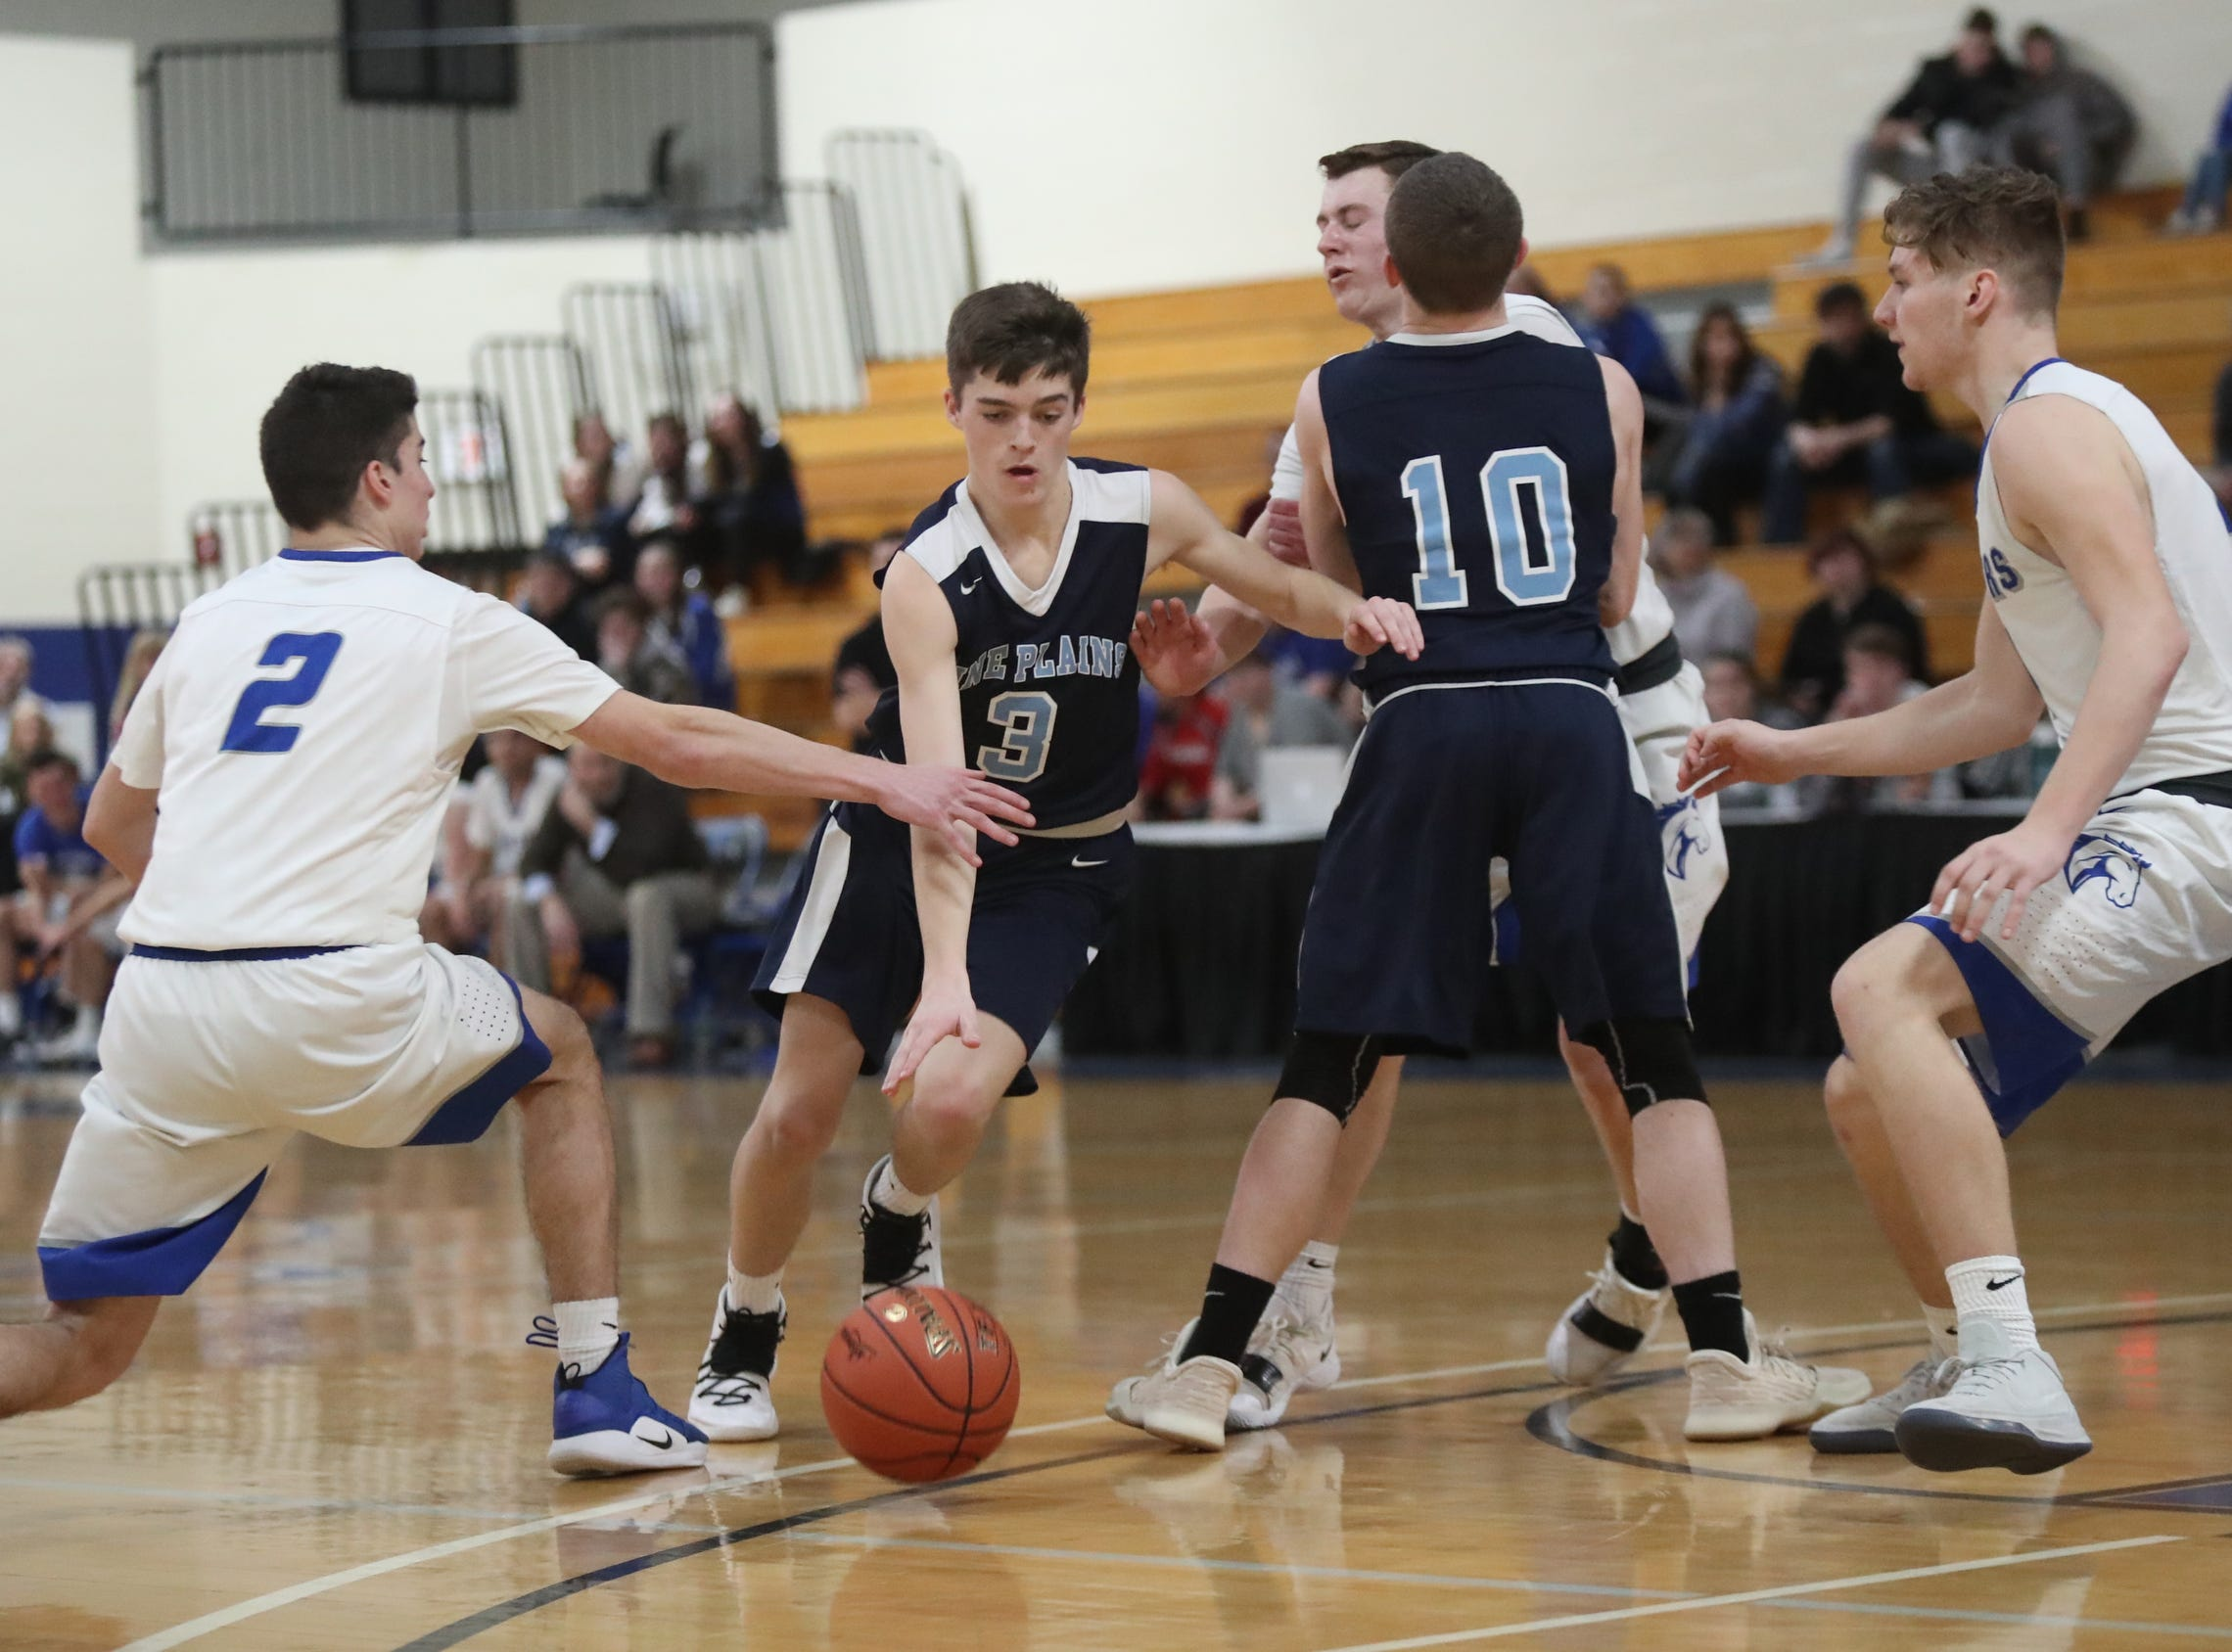 Millbrook defeats Pine Plains 72-58 in the boys Class C section final basketball game at Mount St. Mary College in Newburgh on Thursday, February 28, 2019.